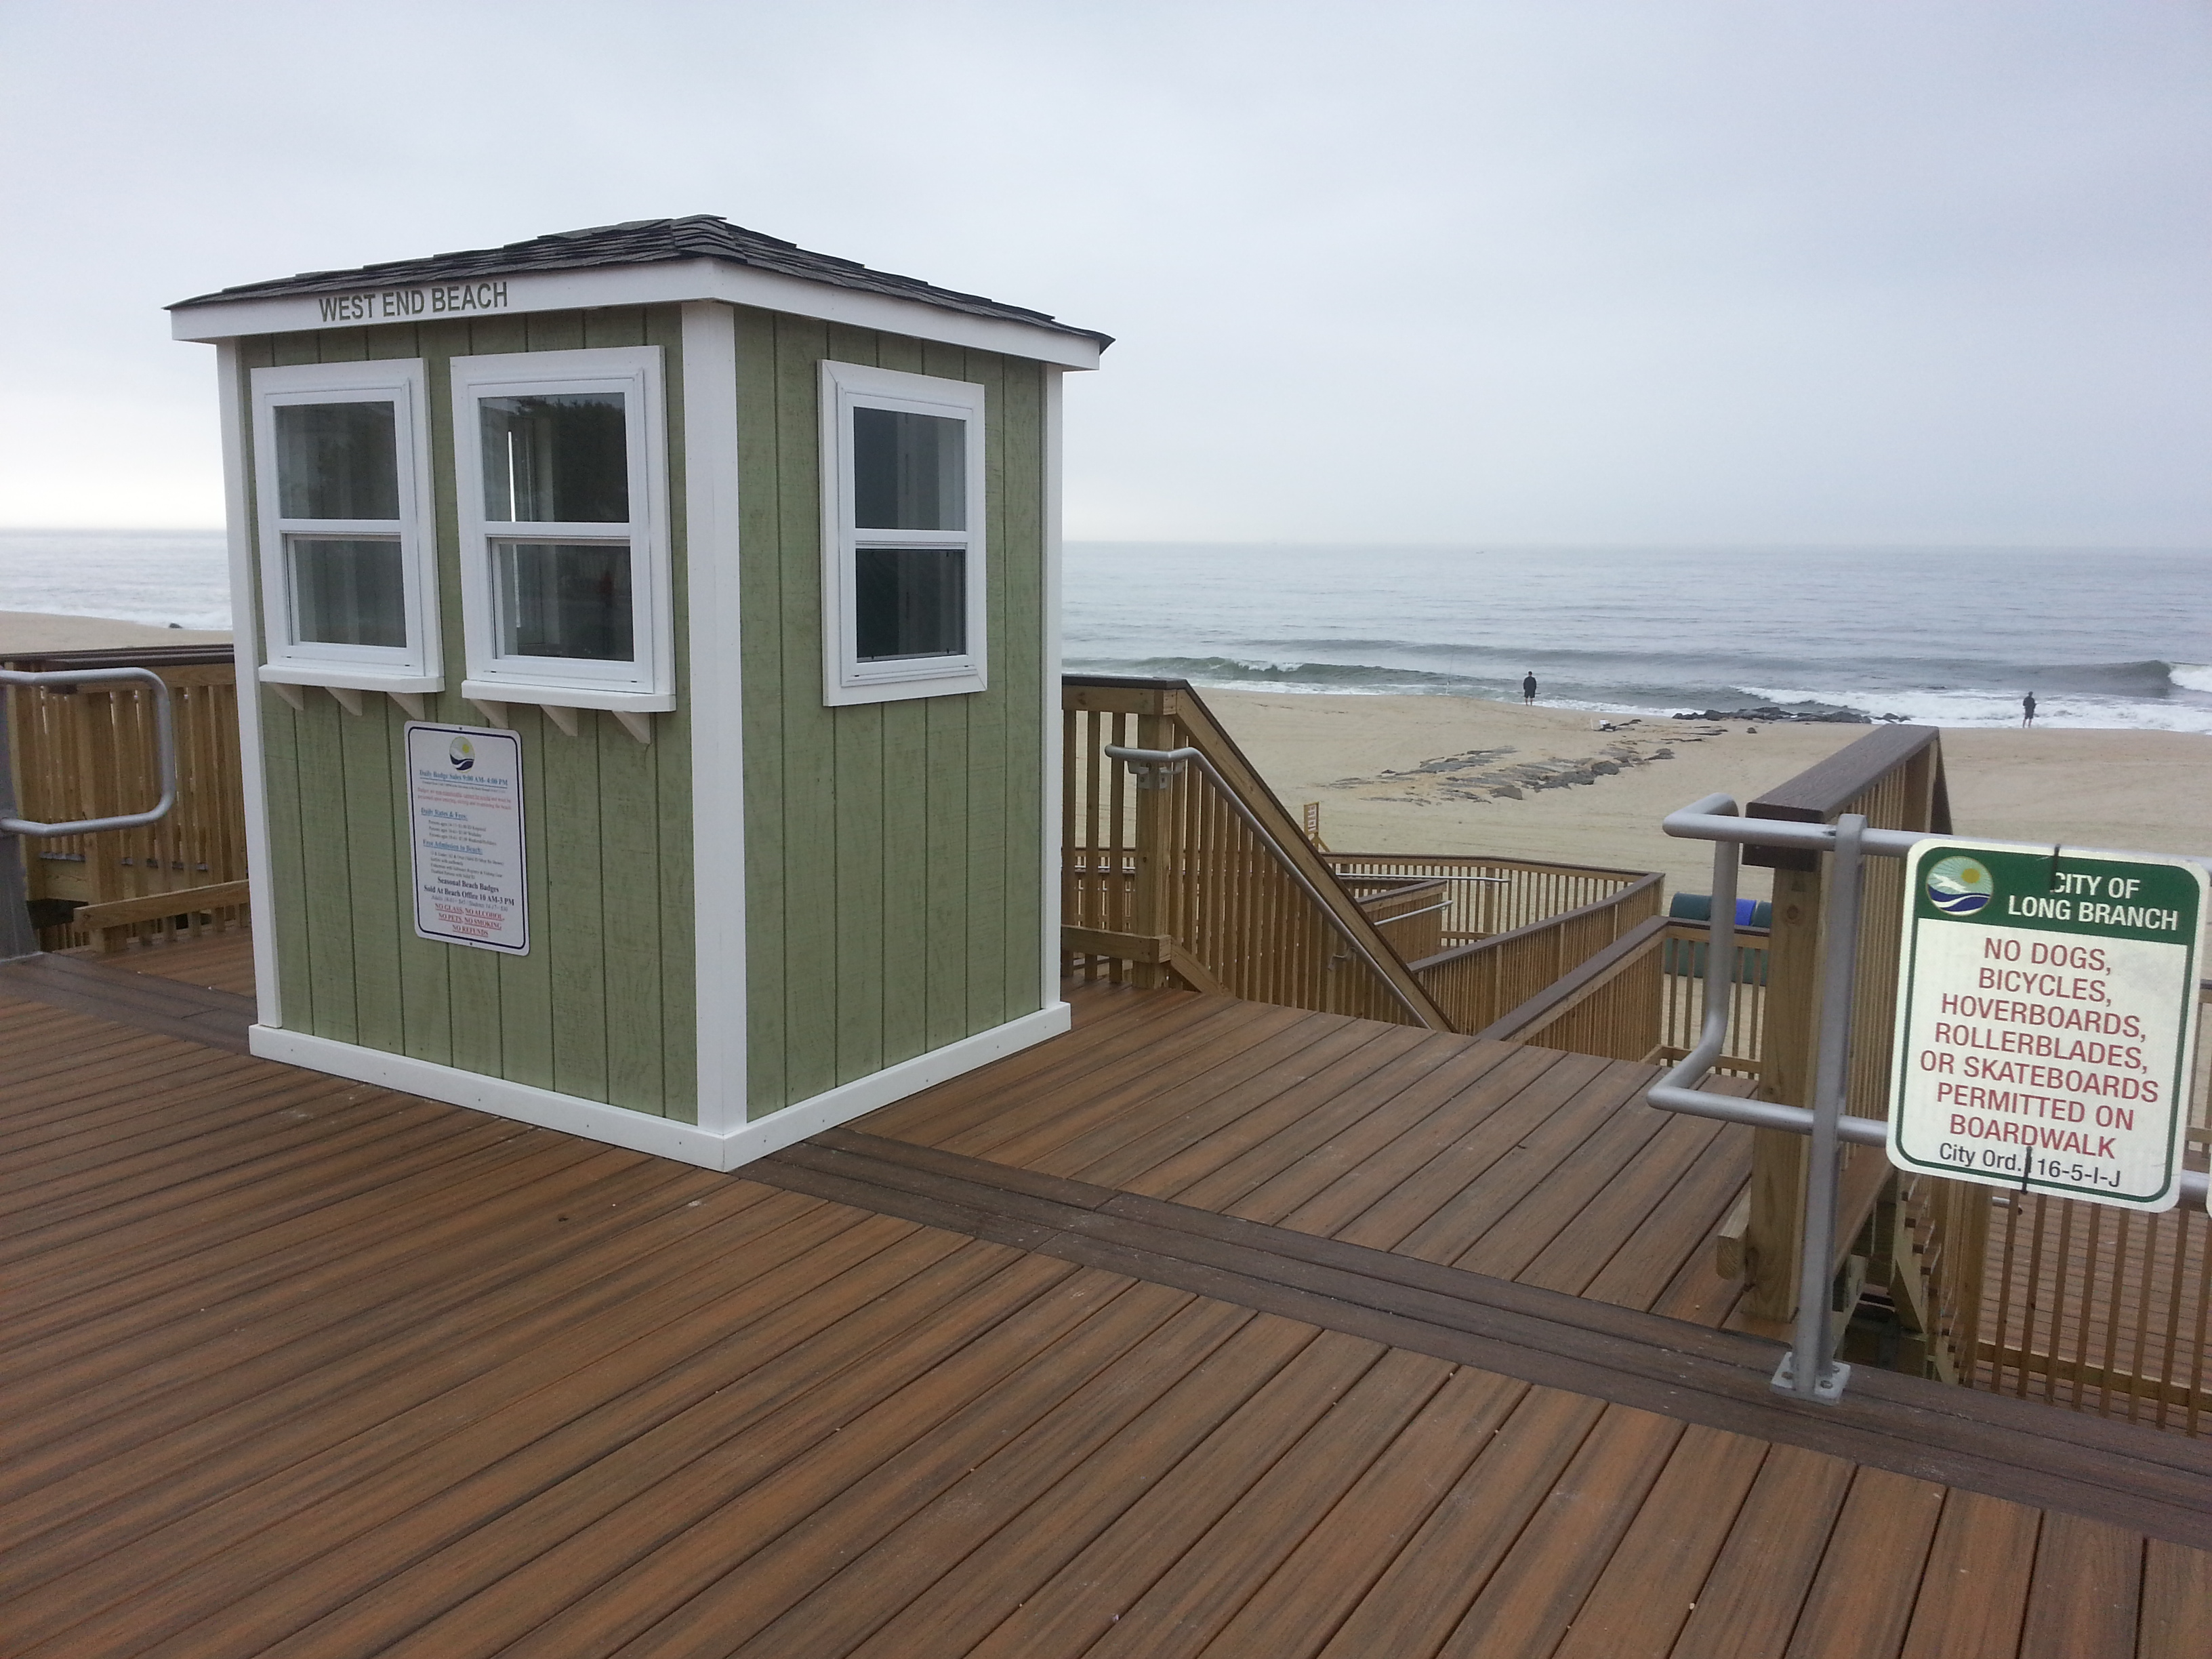 Less than 1000 feet away is access to the Long Branch beach.